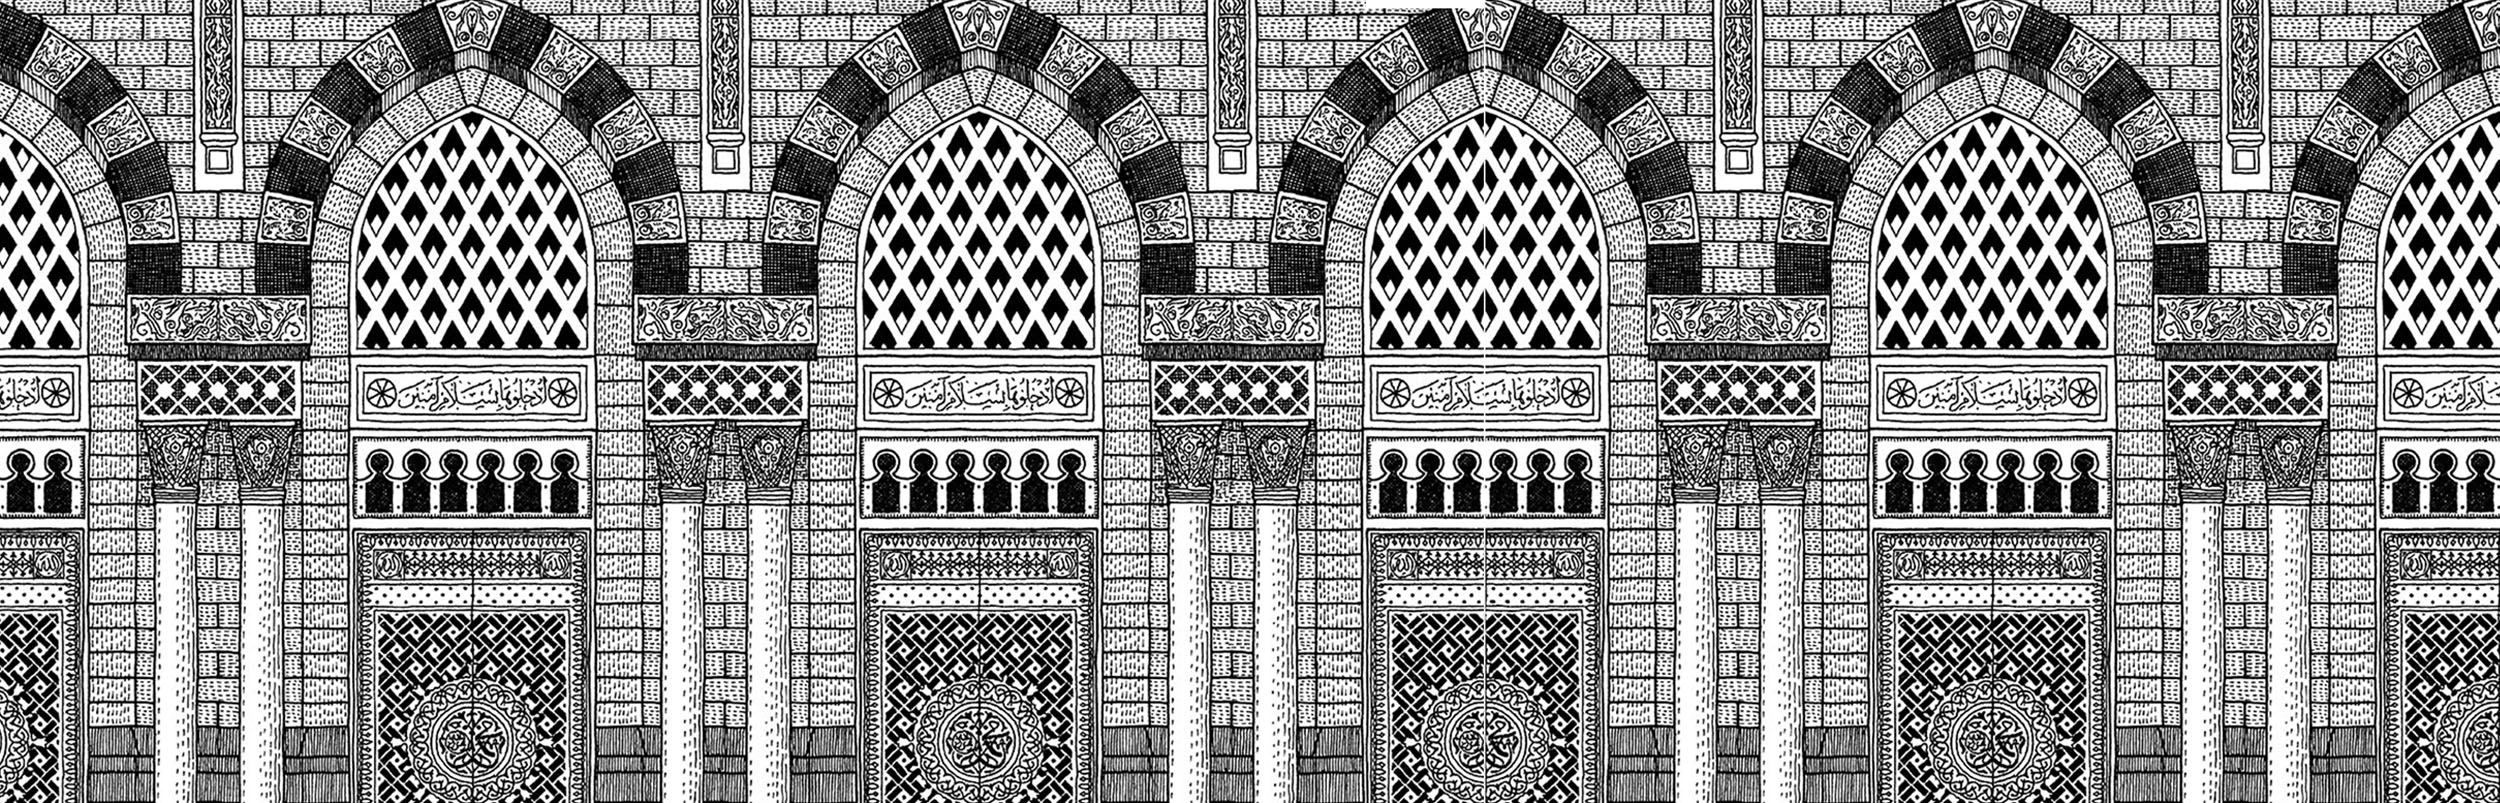 Architectural art in the Prophet's Mosque